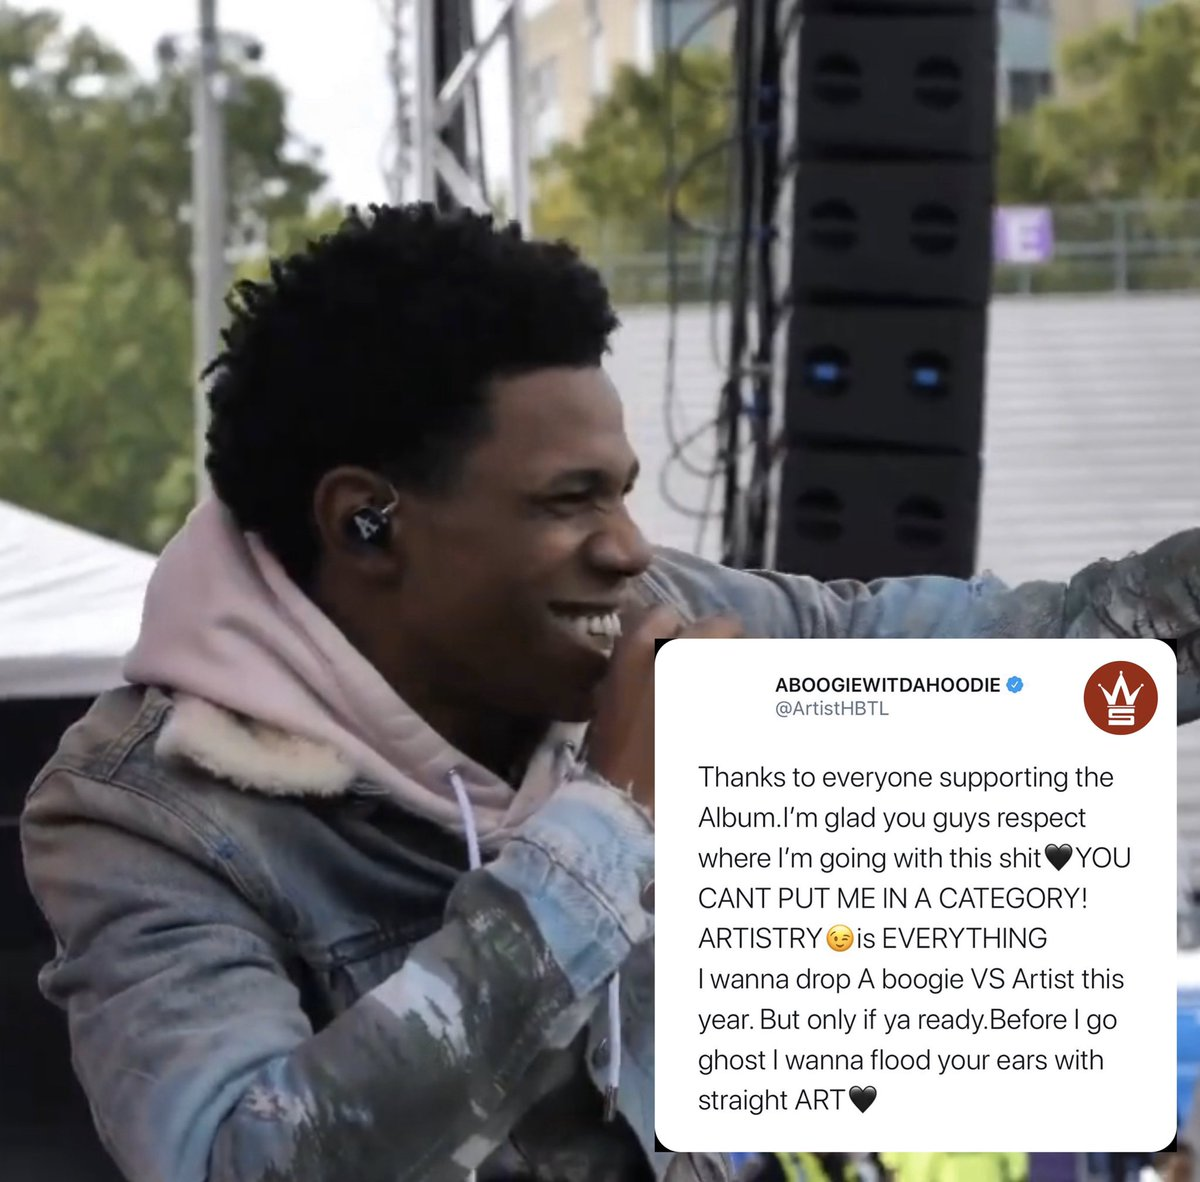 #ABoogie thanking his fans for supporting his latest album and more... what's your favorite track so far on his album #Artist20 @ArtistHBTL<br>http://pic.twitter.com/ZIrUStYnUM